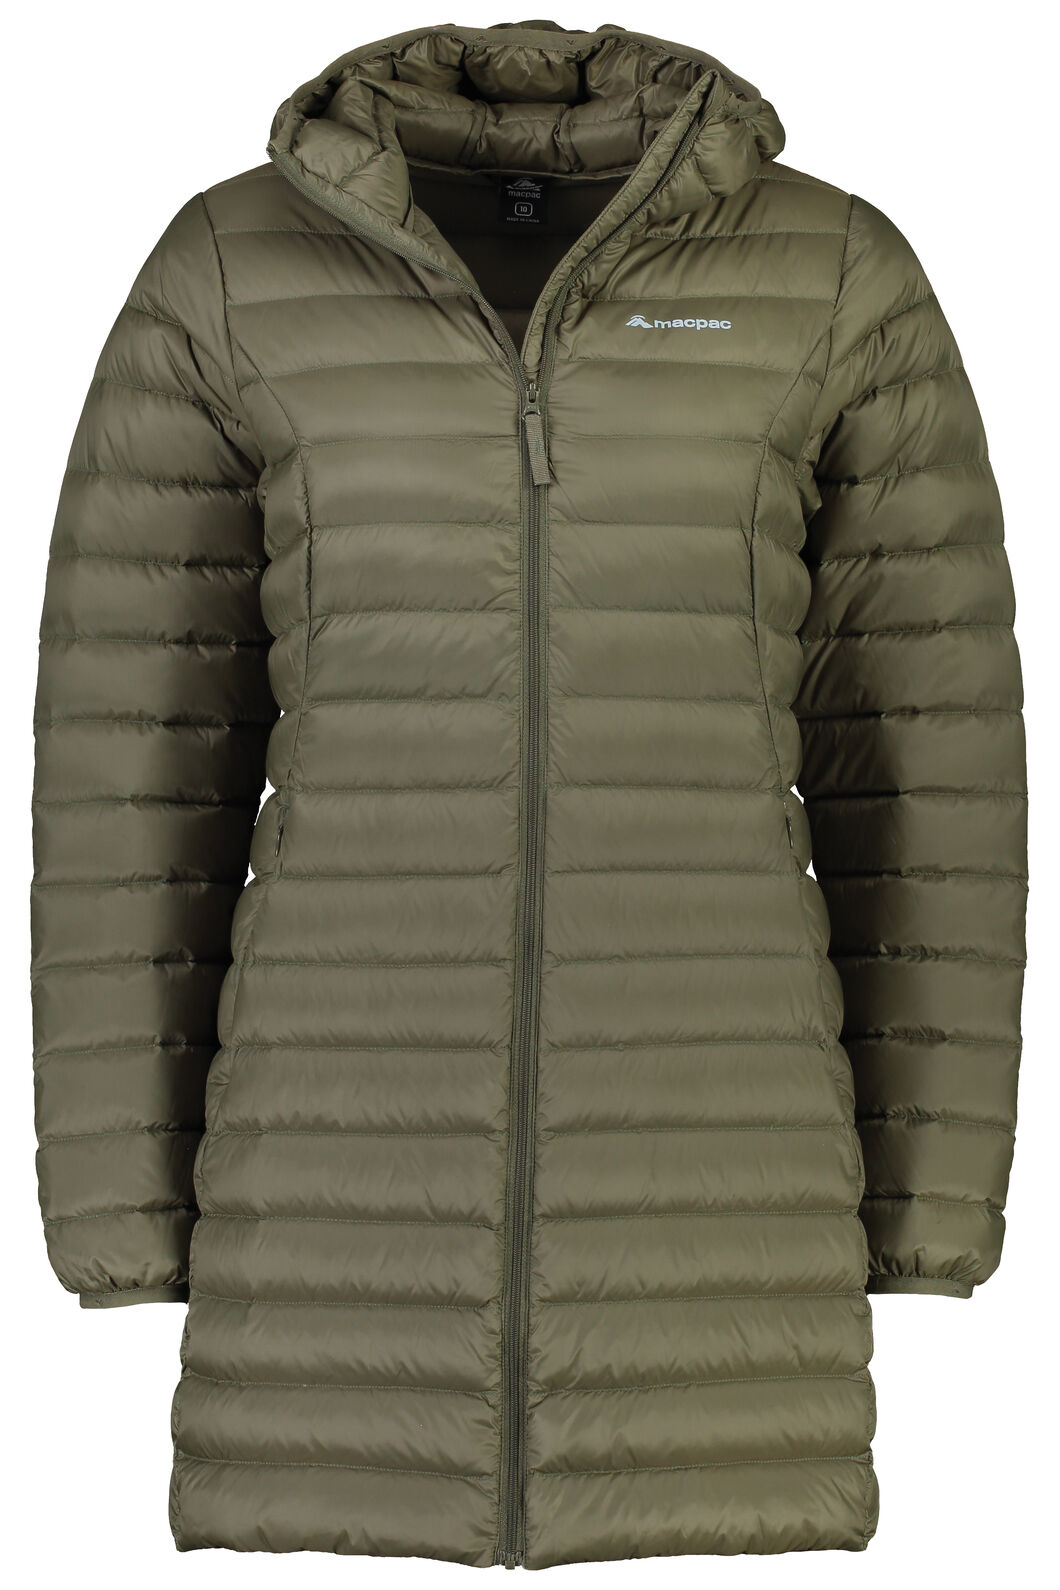 Macpac Uber Light Down Coat - Women's, Grape Leaf, hi-res